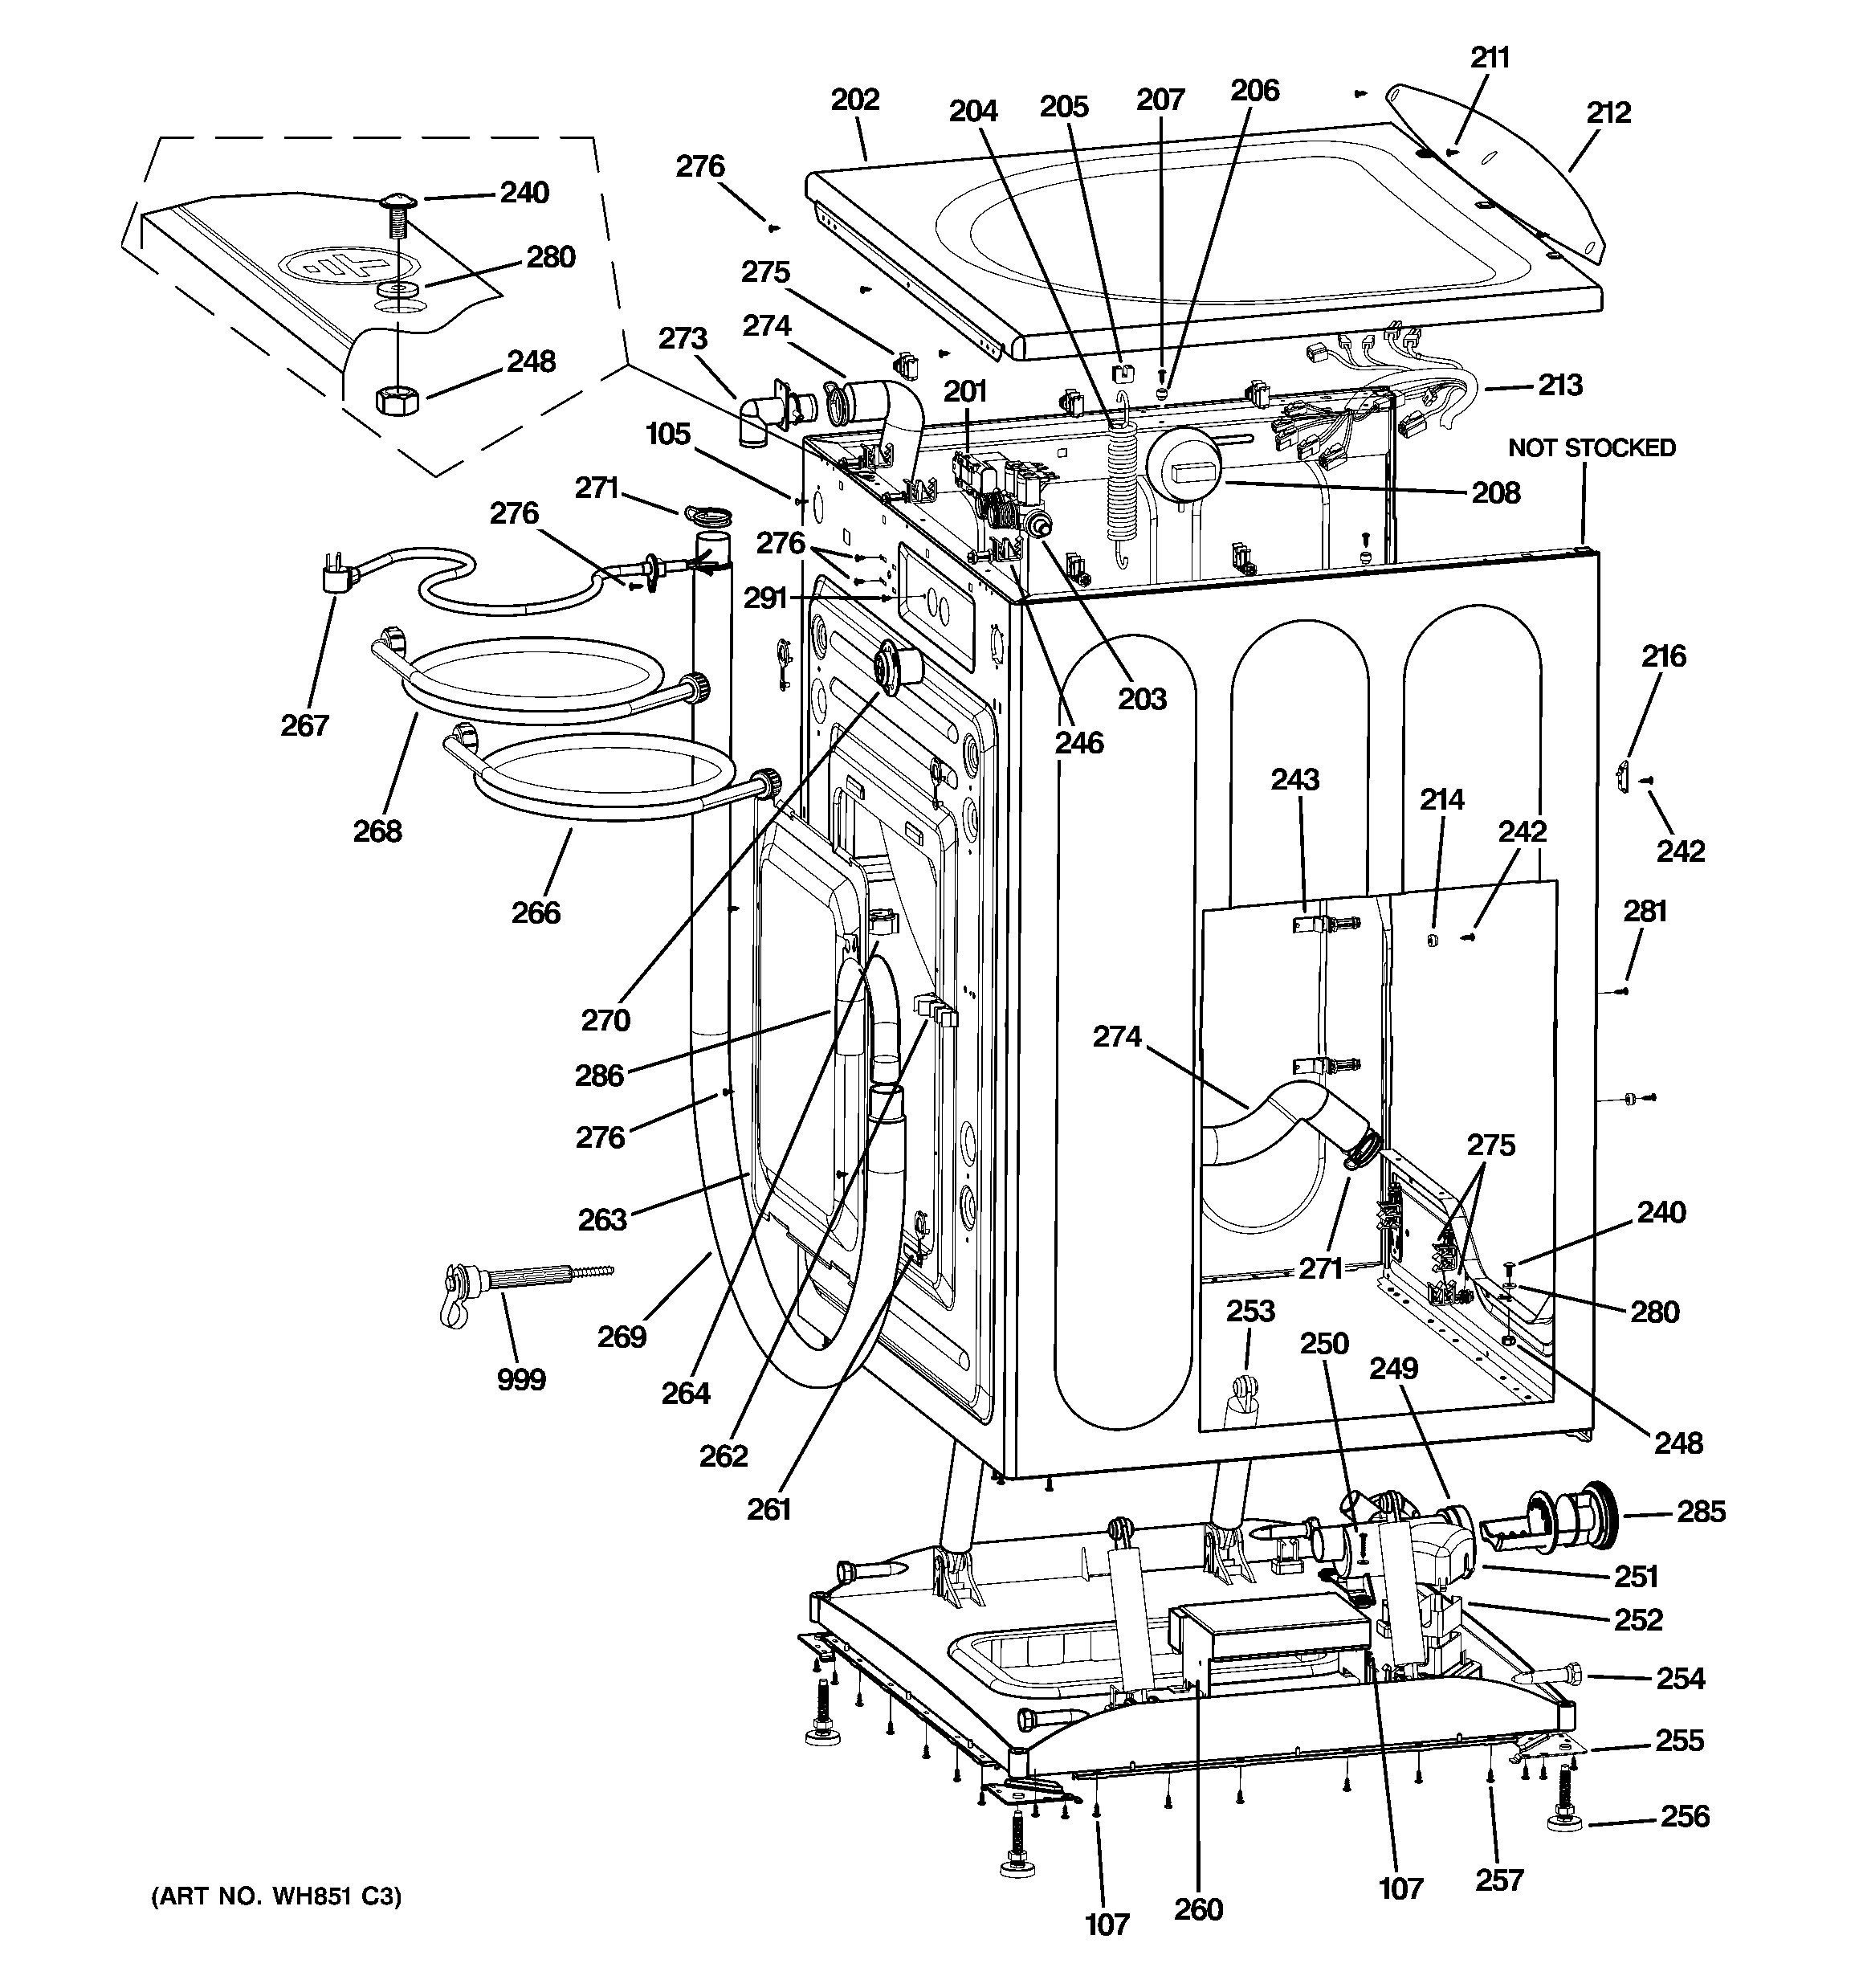 Frigidaire Affinity Parts Diagram Ge Model Wbvh5200j3ww Residential Washers Genuine Parts Of Frigidaire Affinity Parts Diagram